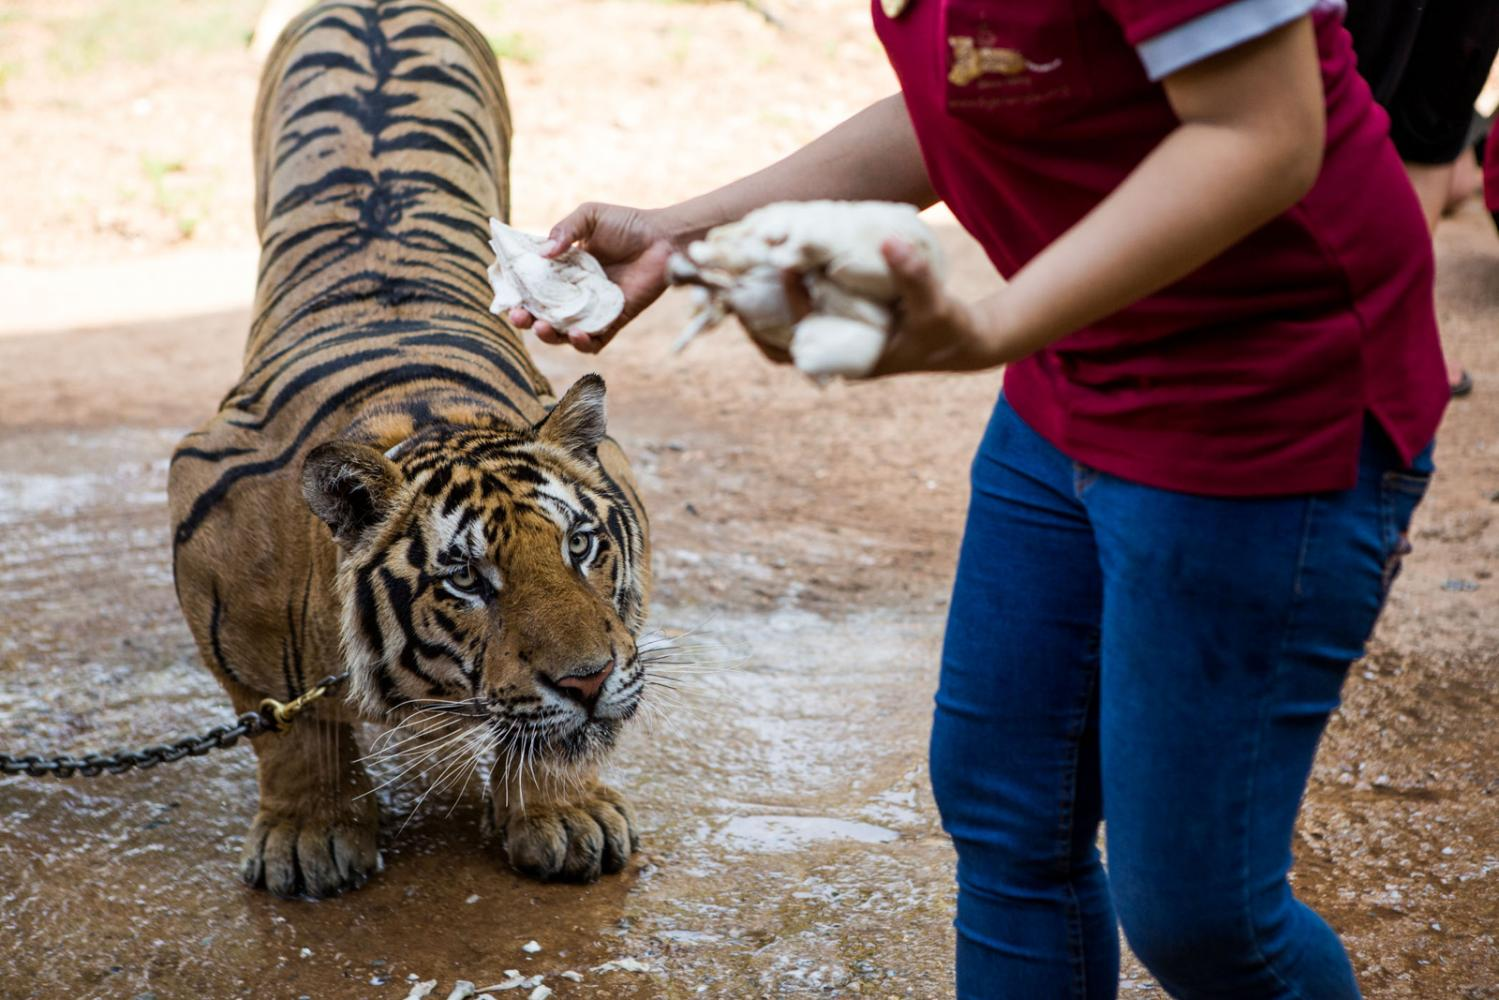 A tiger is fed cooked chicken in Kanchanaburi, Thailand